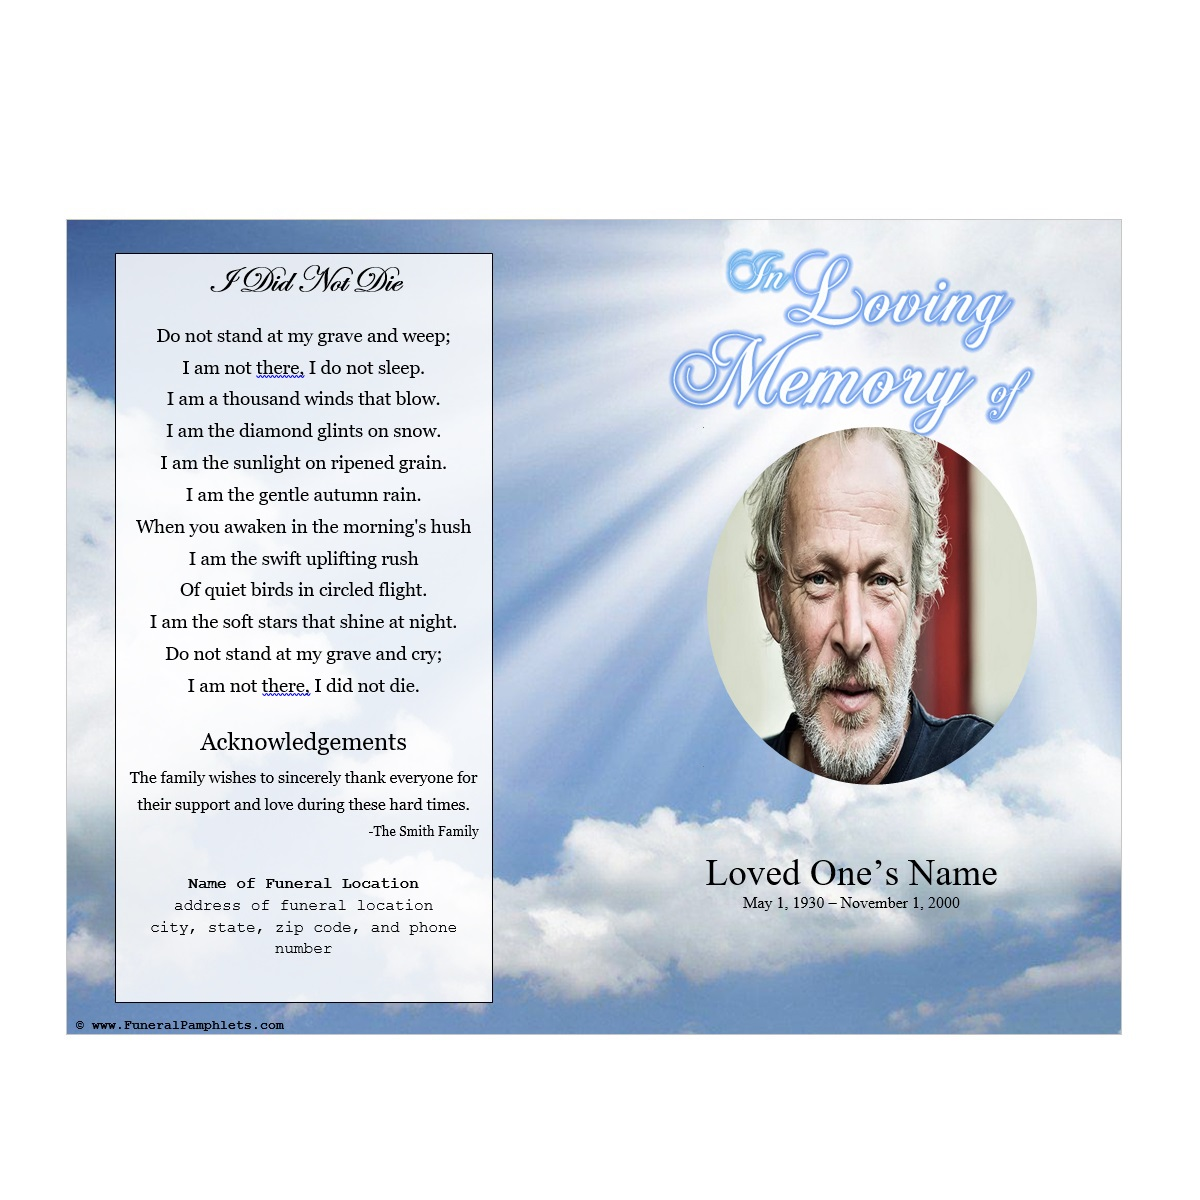 Sky memorial program funeral pamphlets for Memorial pamphlets free templates